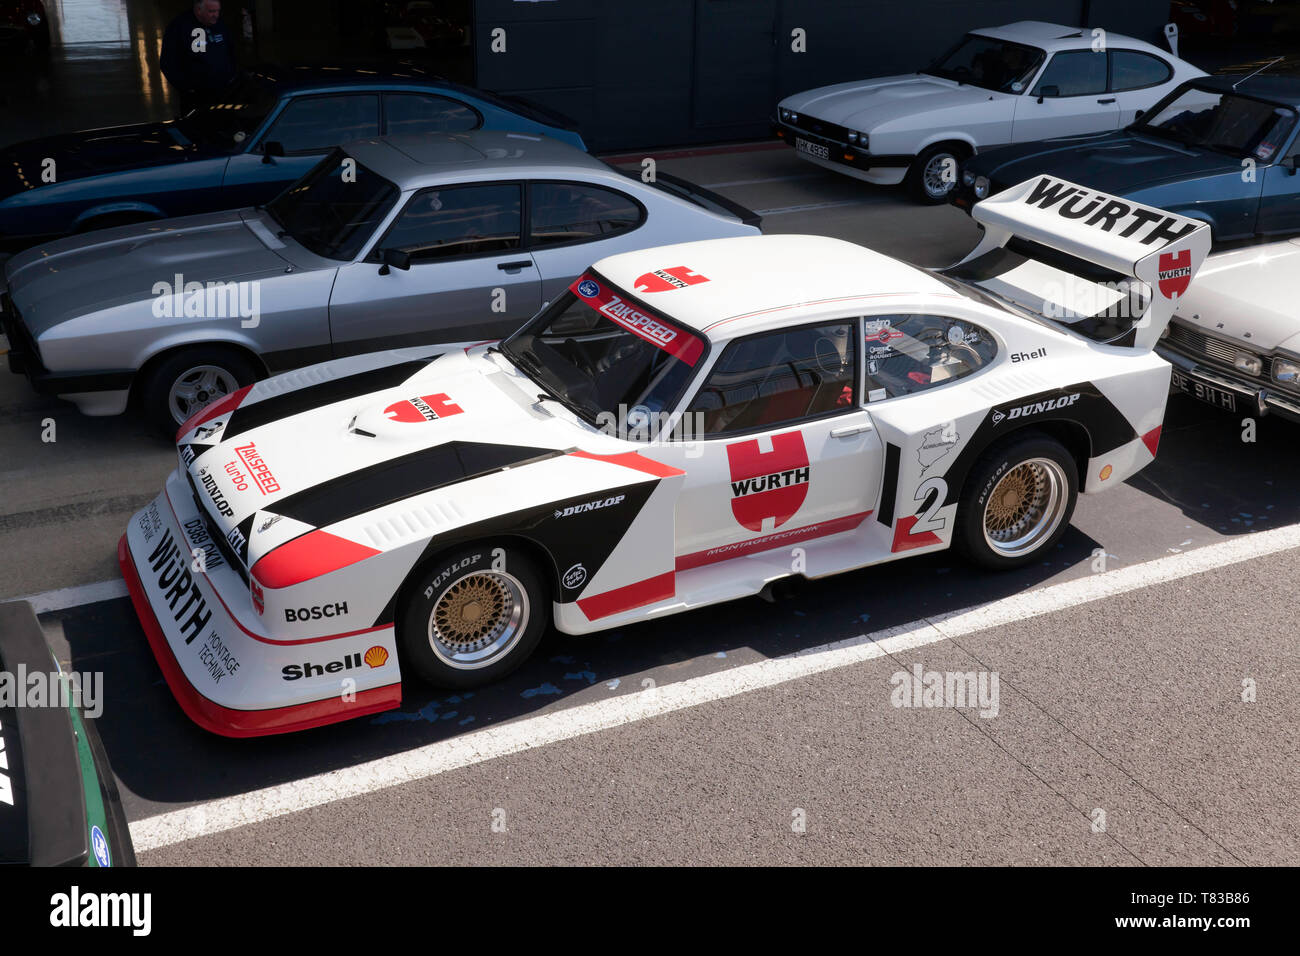 Aerial View of a Zakspeed Ford Capri, in the Pit Lane, during the 2019 Silverstone Classic Media Day Stock Photo